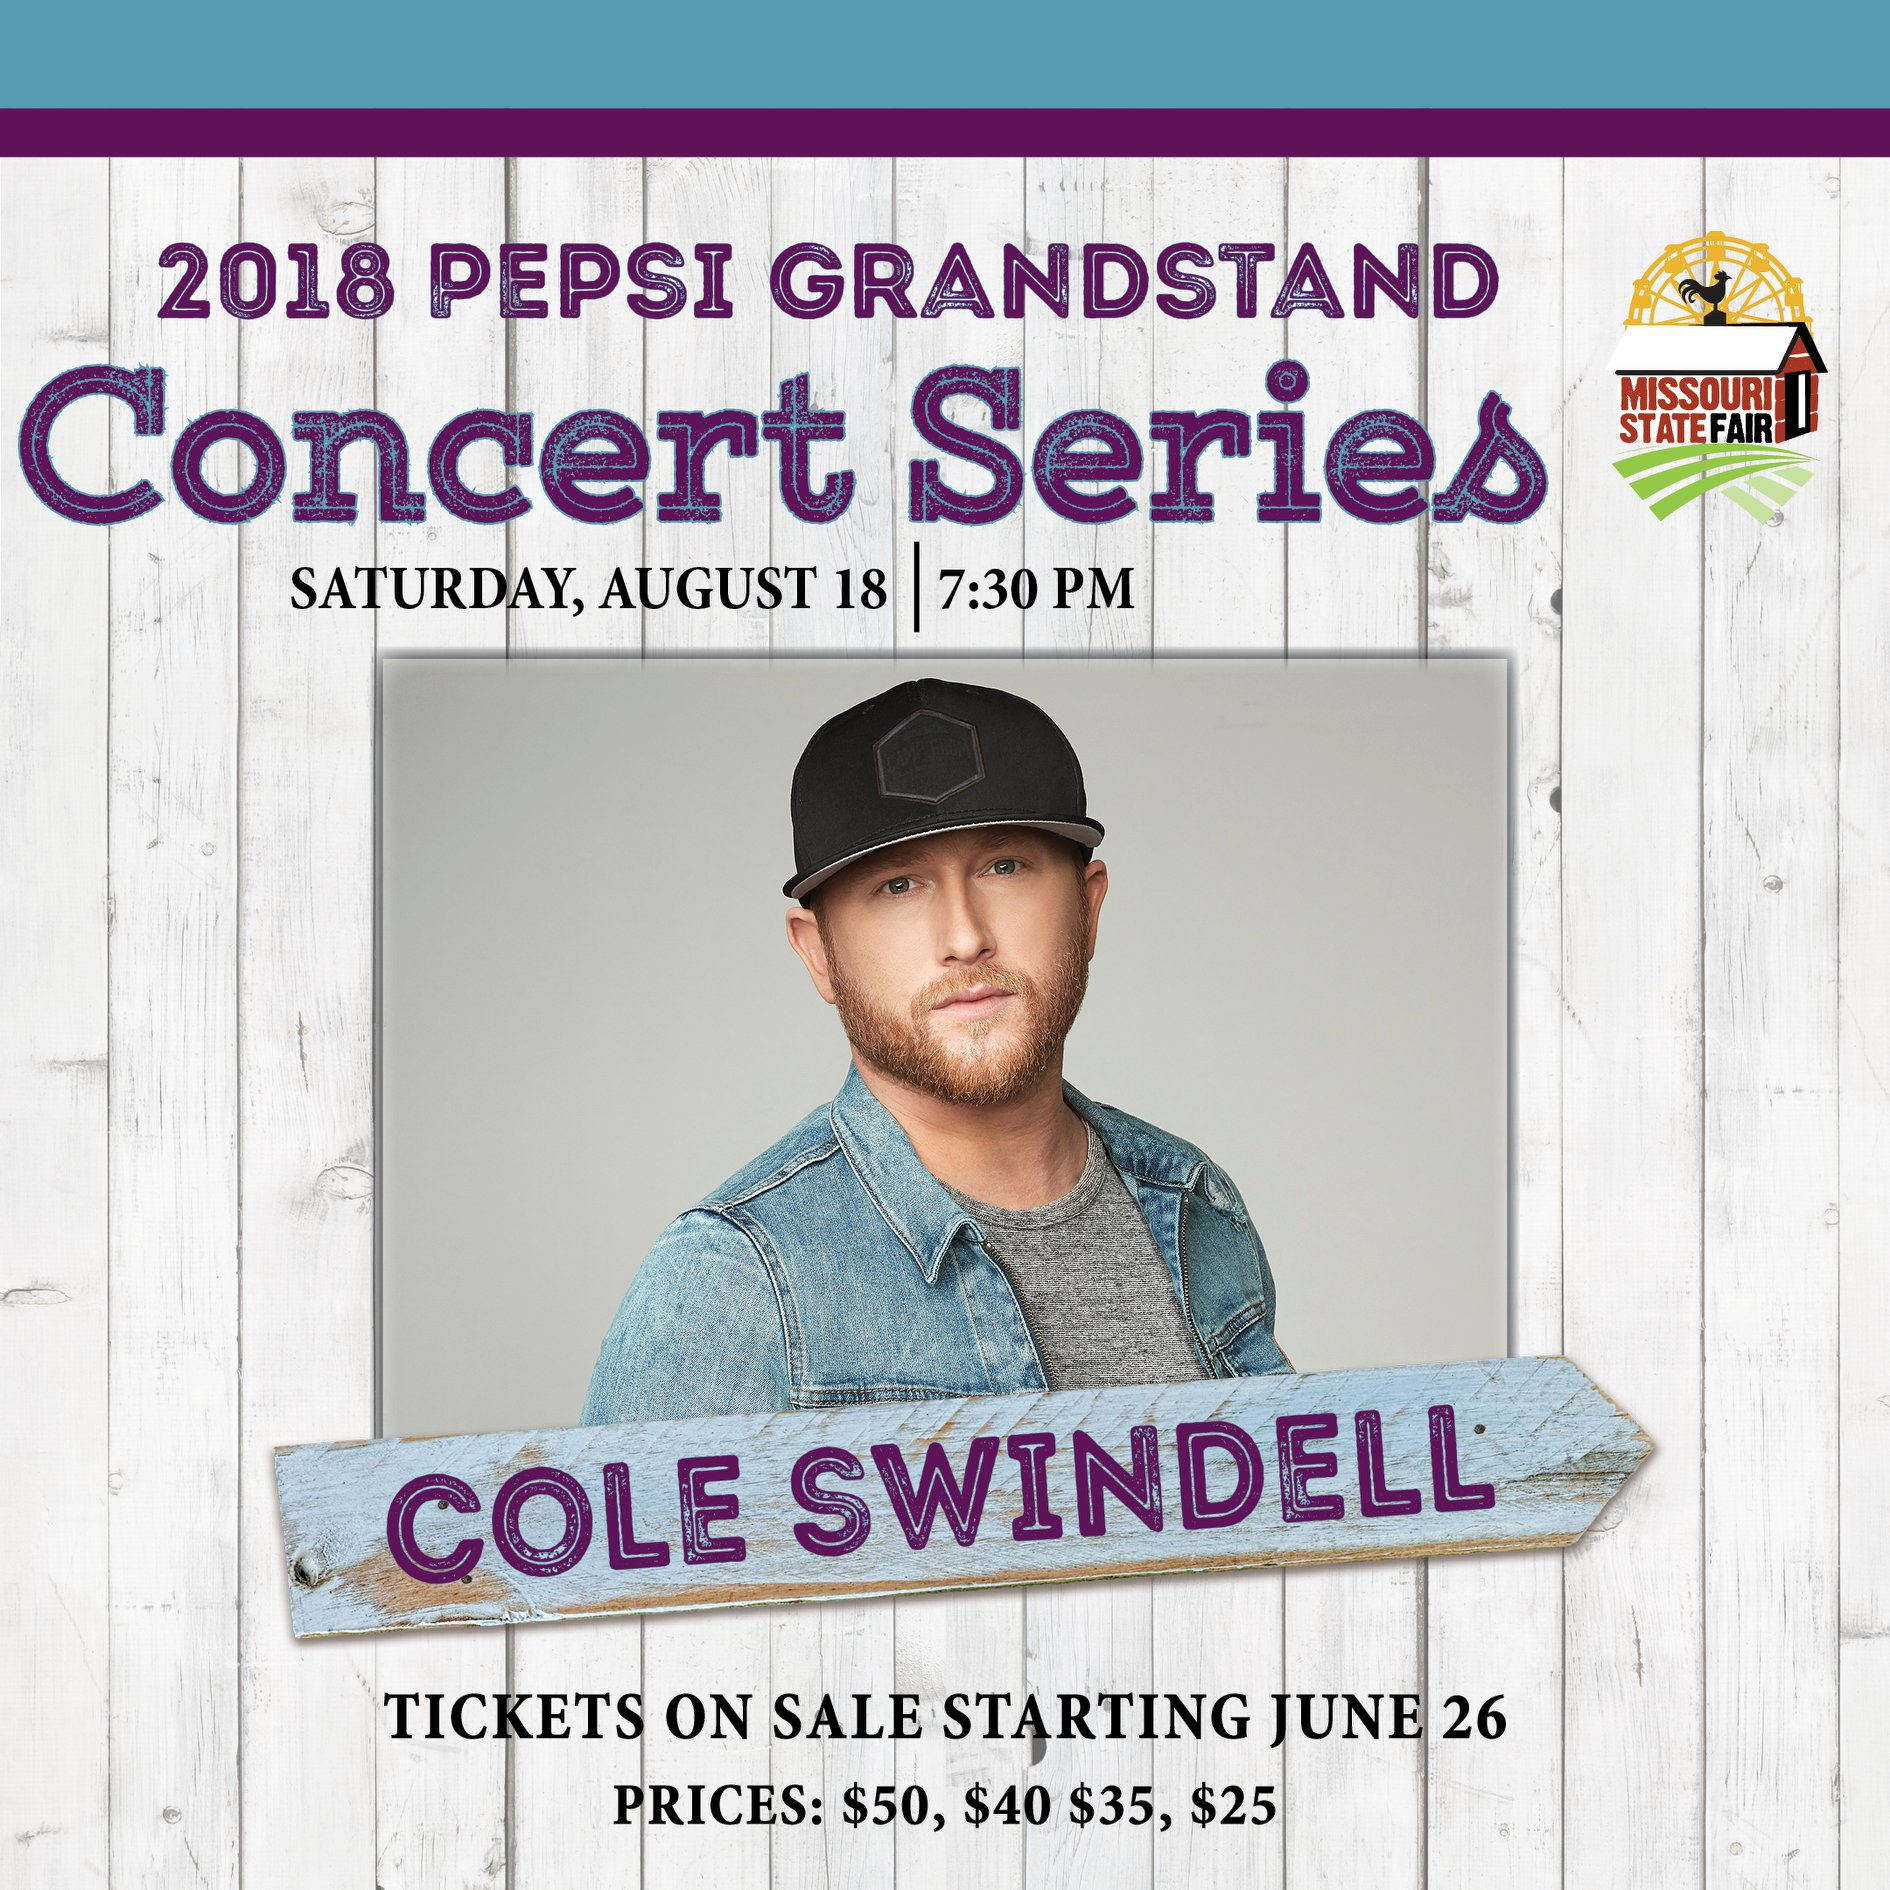 Missouri State Fair announces Cole Swindell show Aug. 18